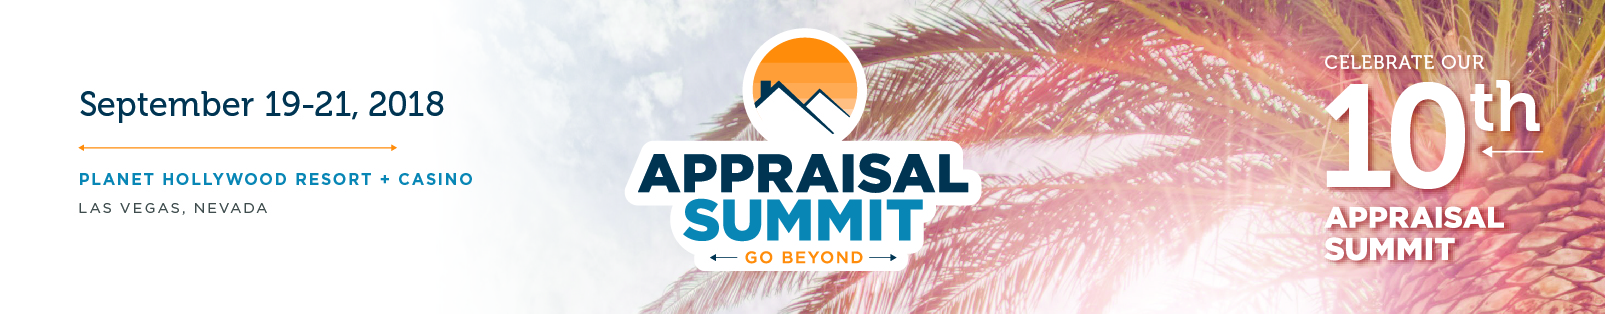 2018 Appraisal Summit